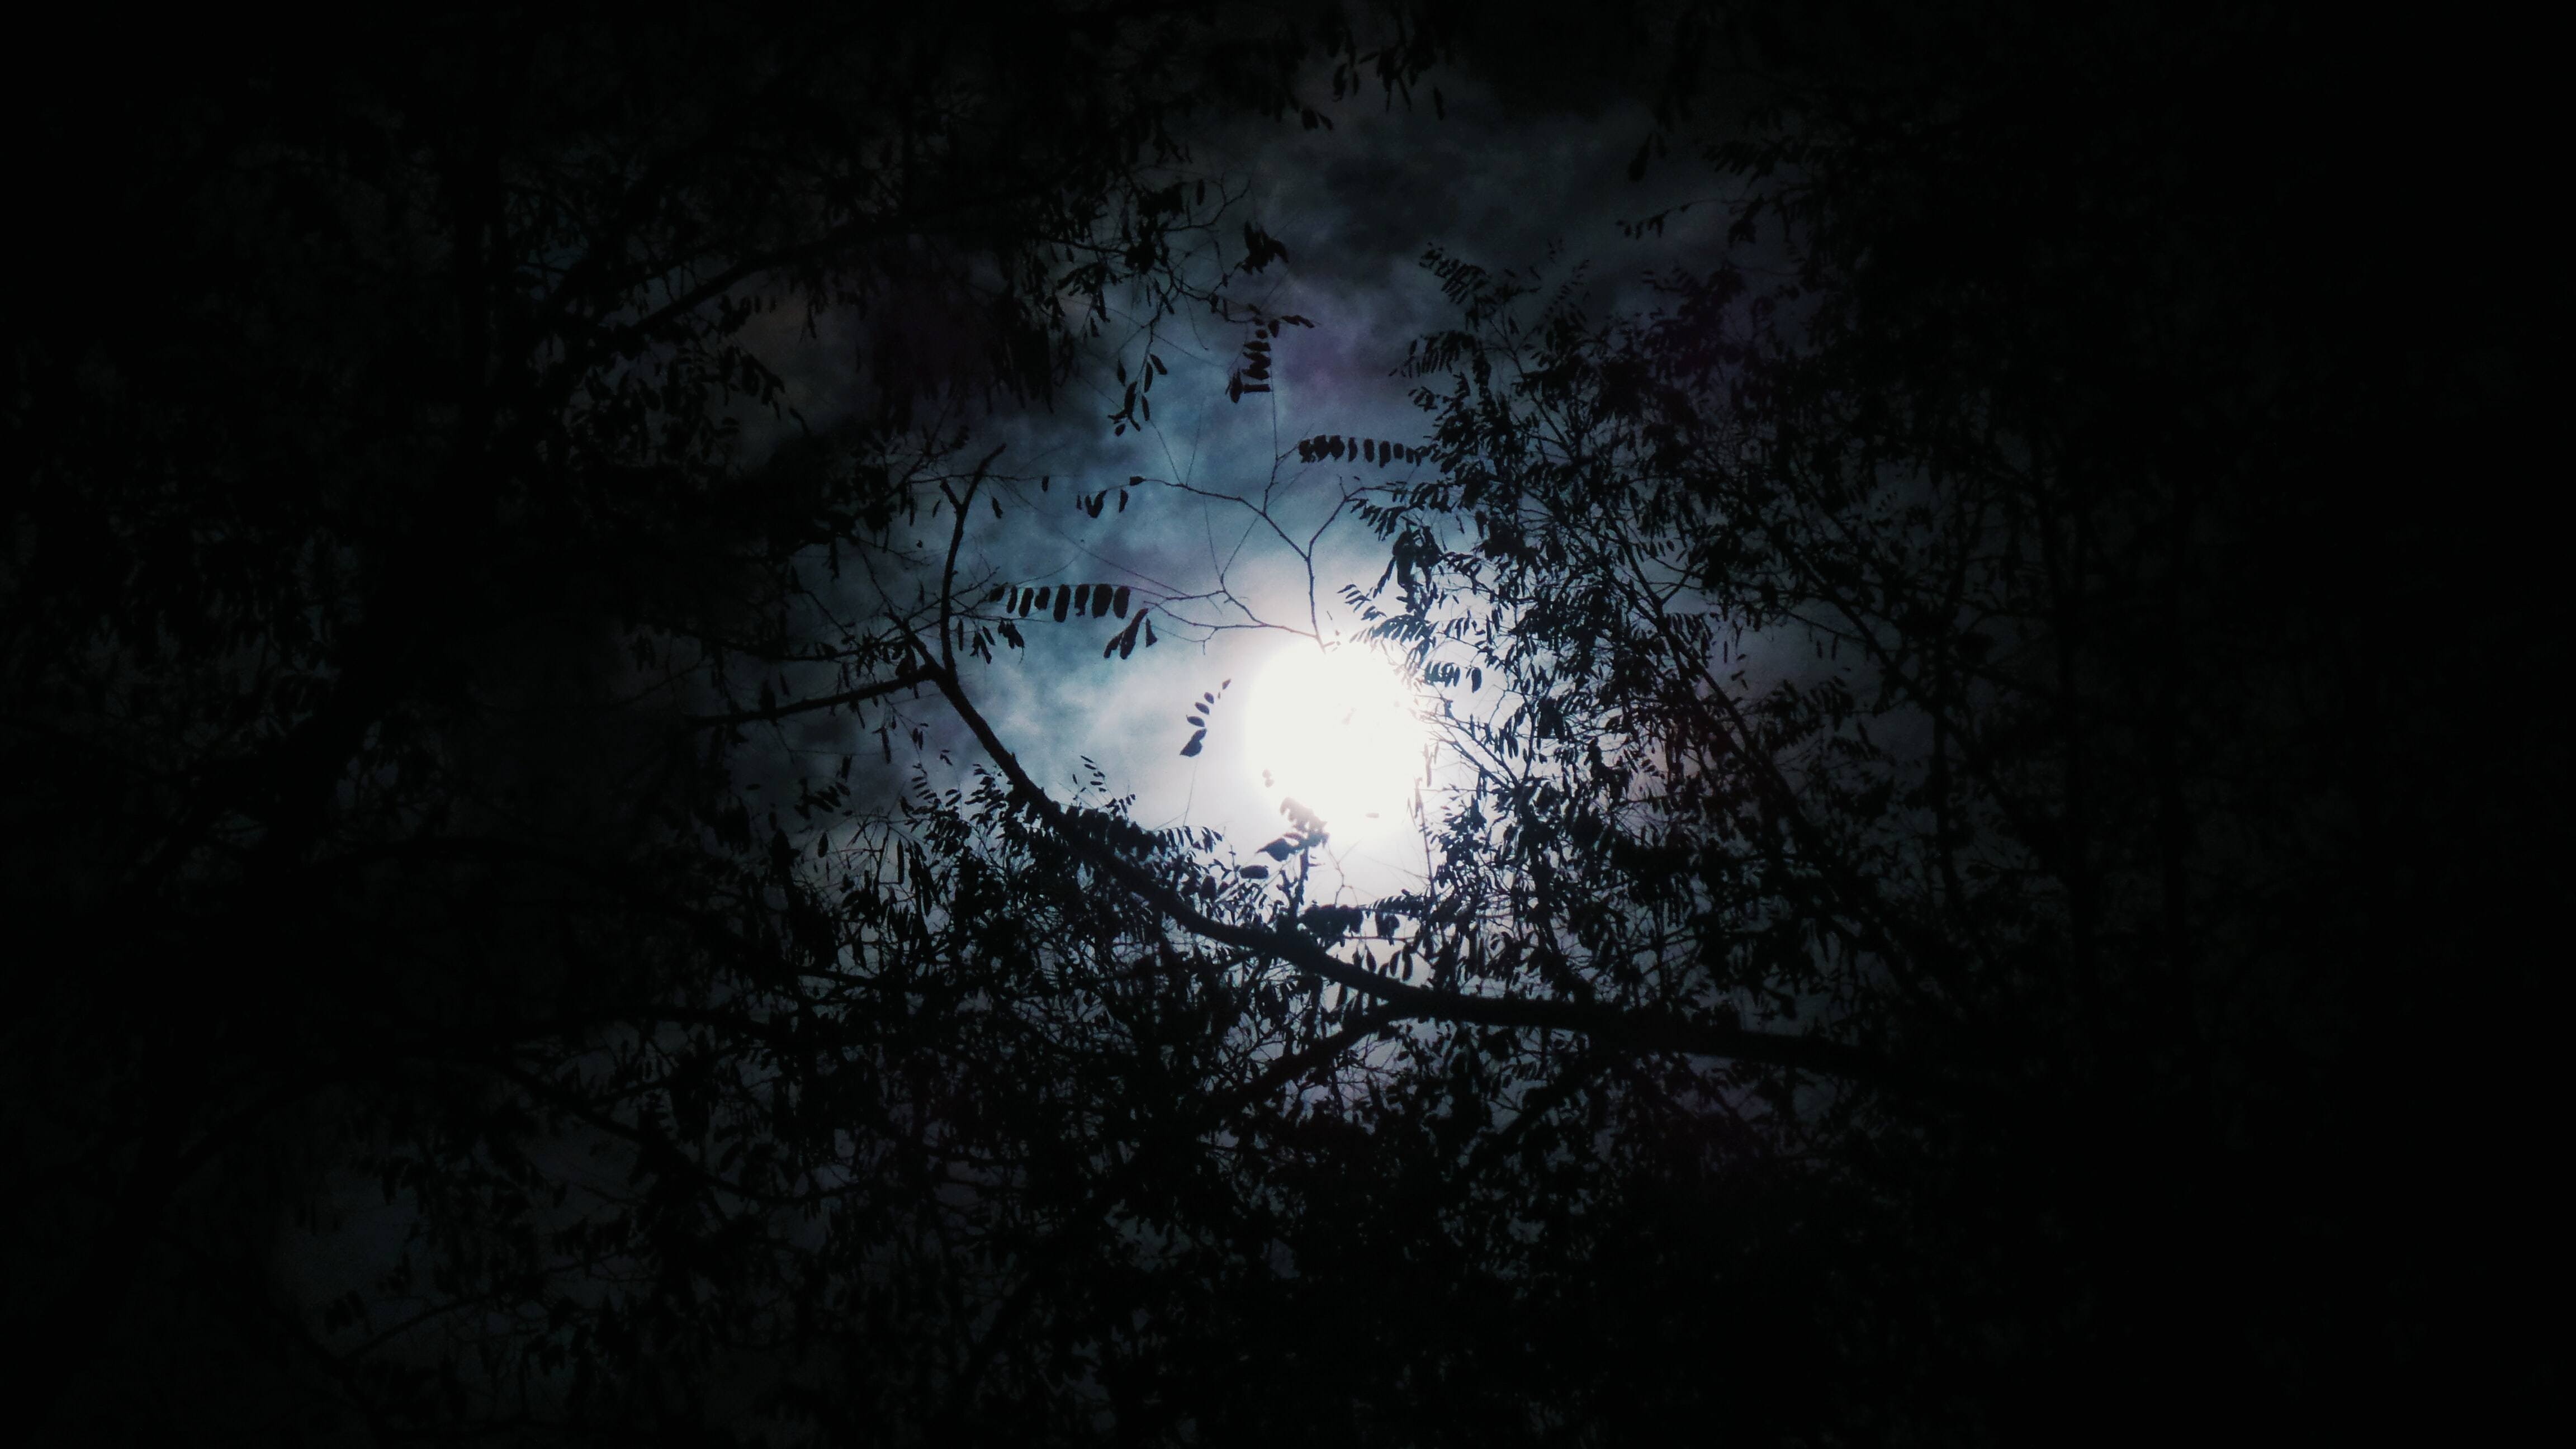 Looking up to the moon on the sky as seen through silhouetted leafy branches